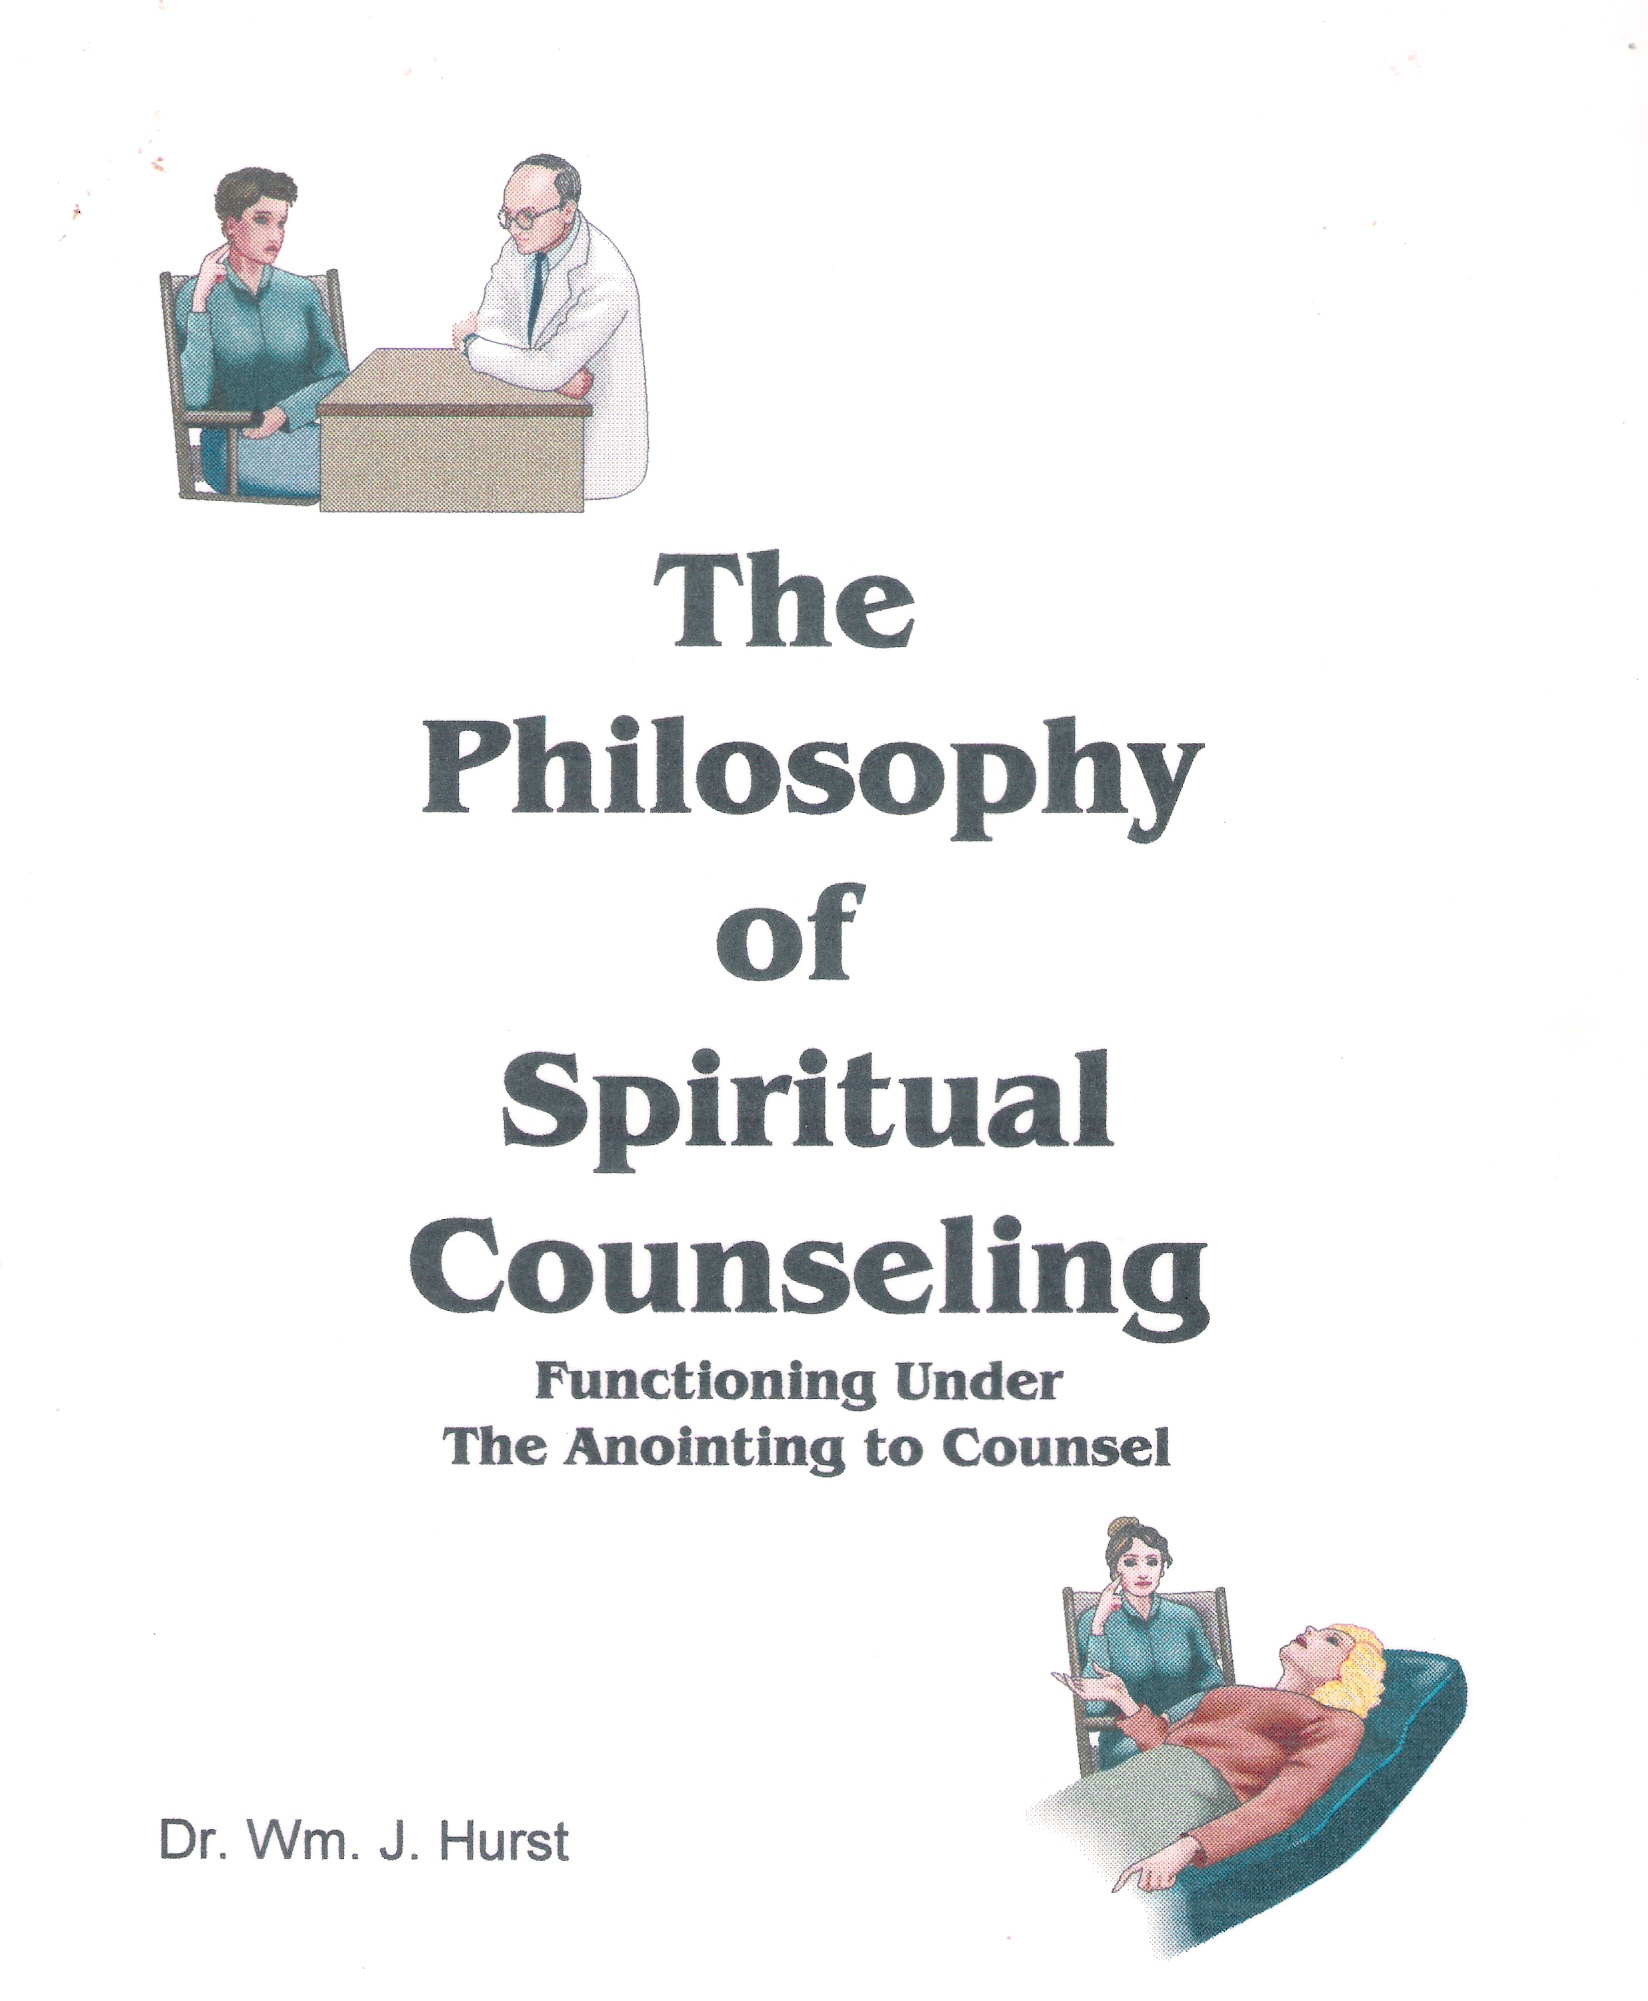 counseling philosophy A counseling philosophy by john thomas wynne a dissertation submitted to the graduate faculty in partial fulfillment of the requirements for the degree of.